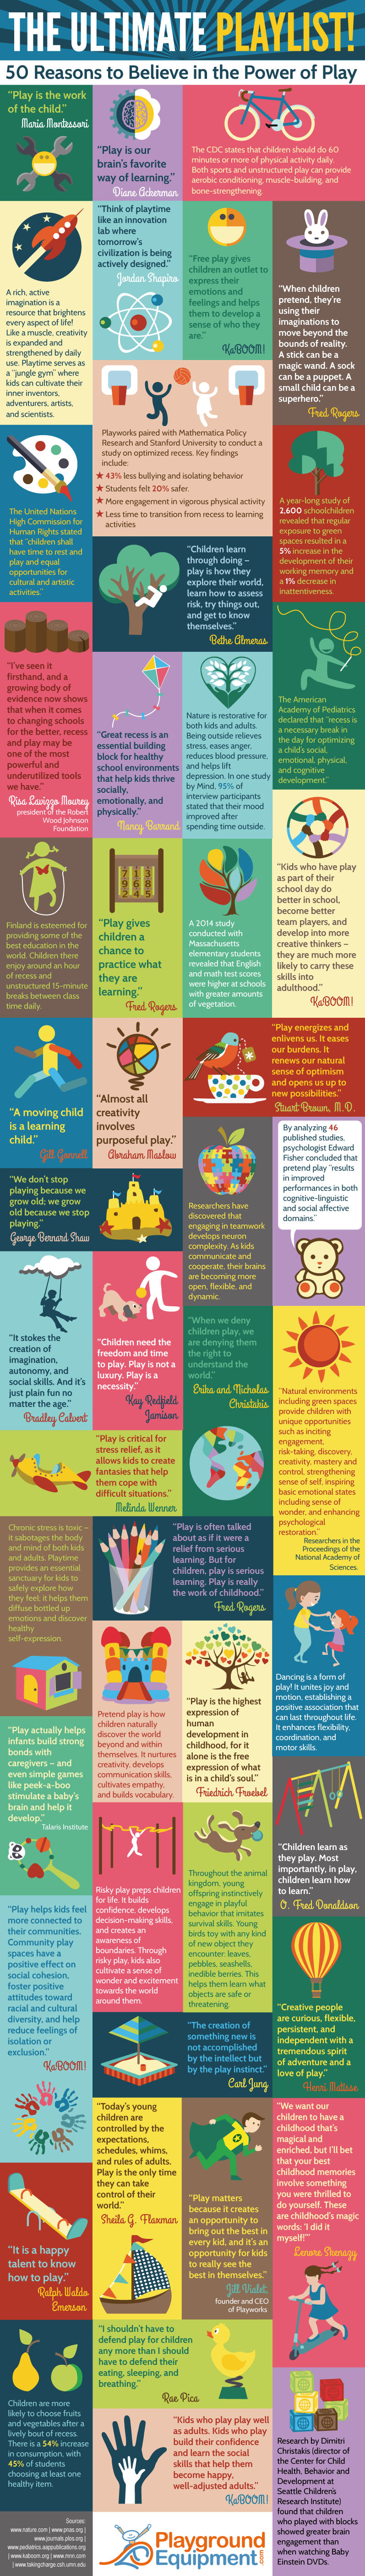 50 Reasons Why Free Play Is Important for Your Students